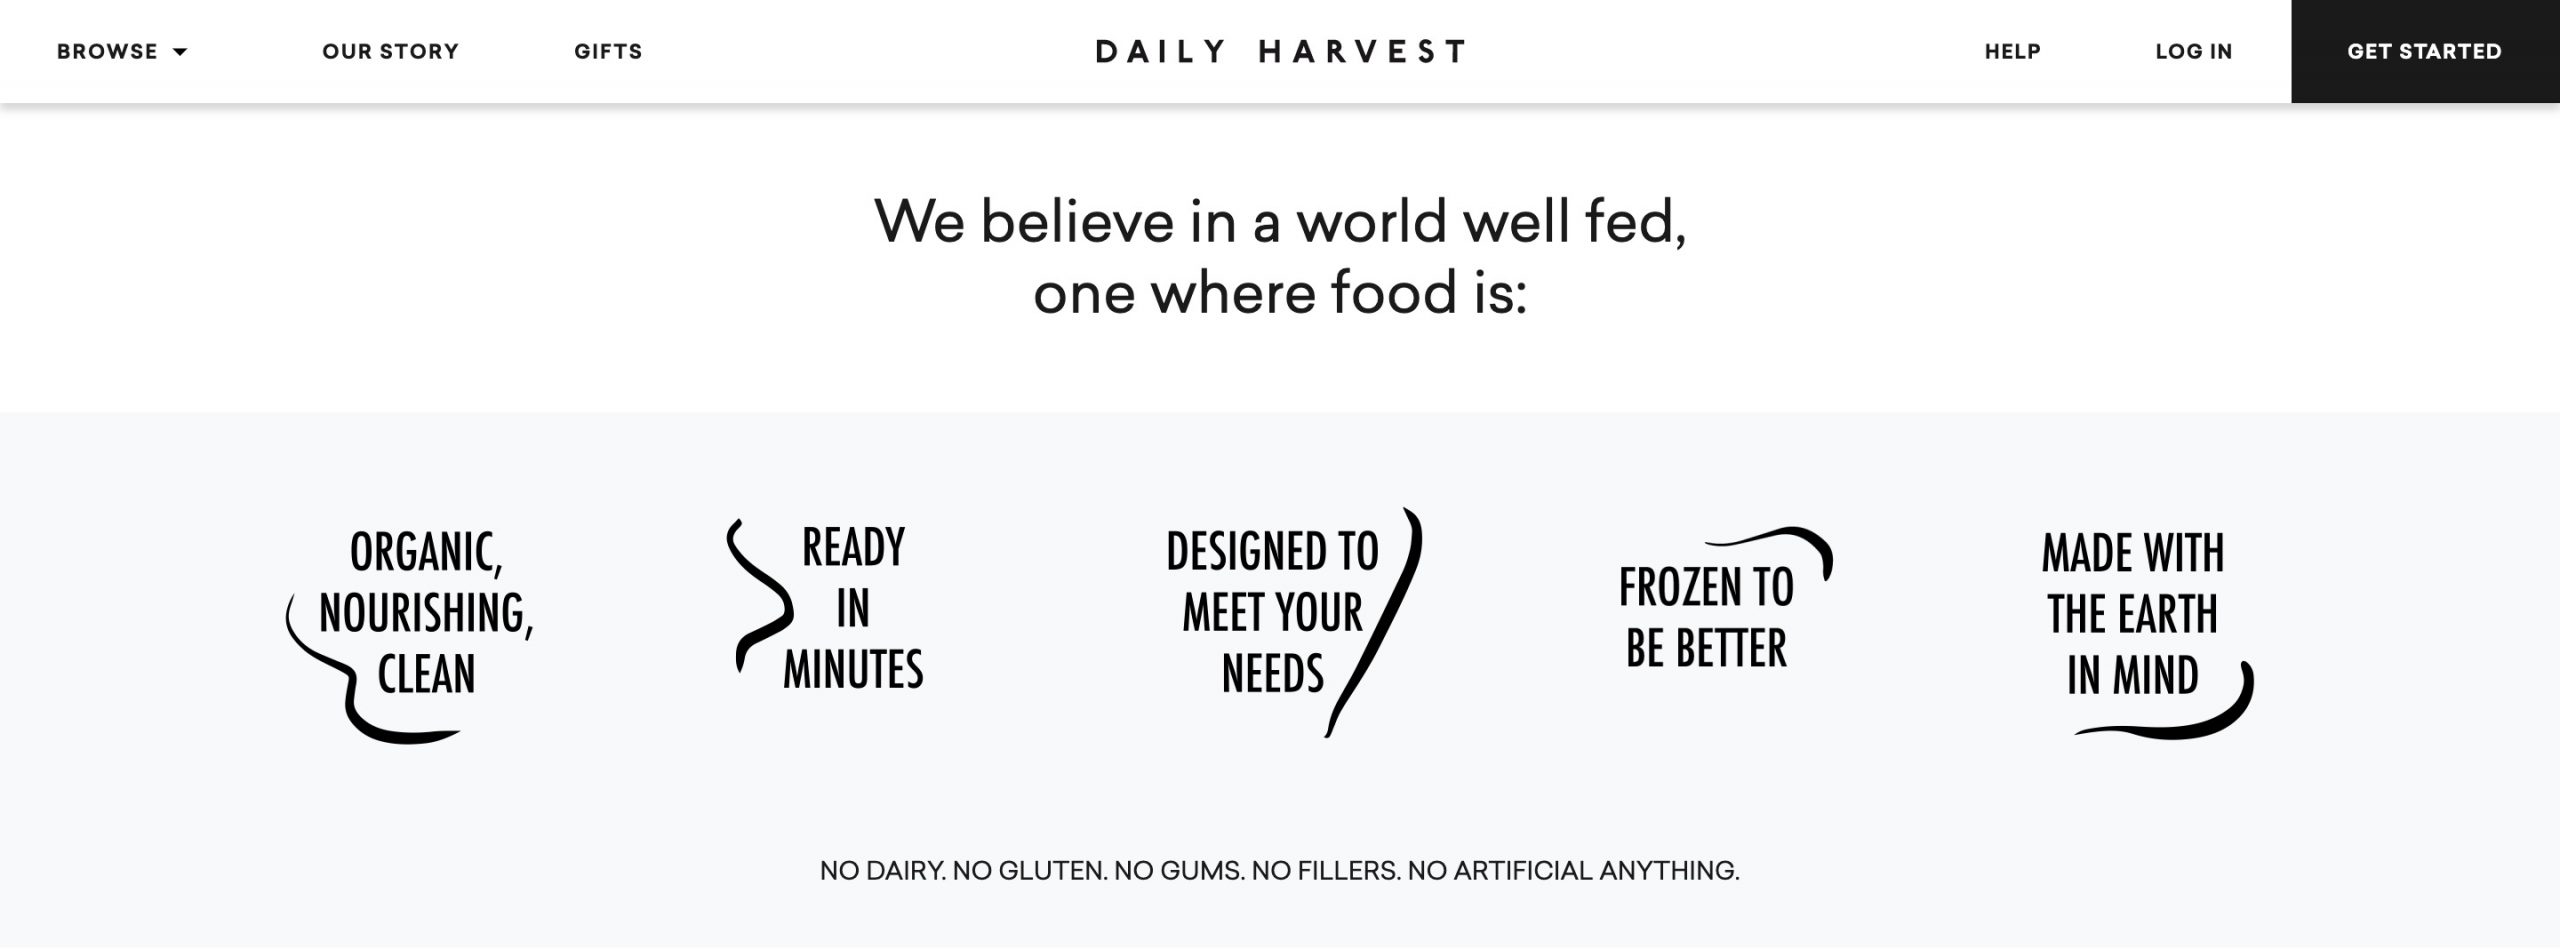 Daily Harvest features